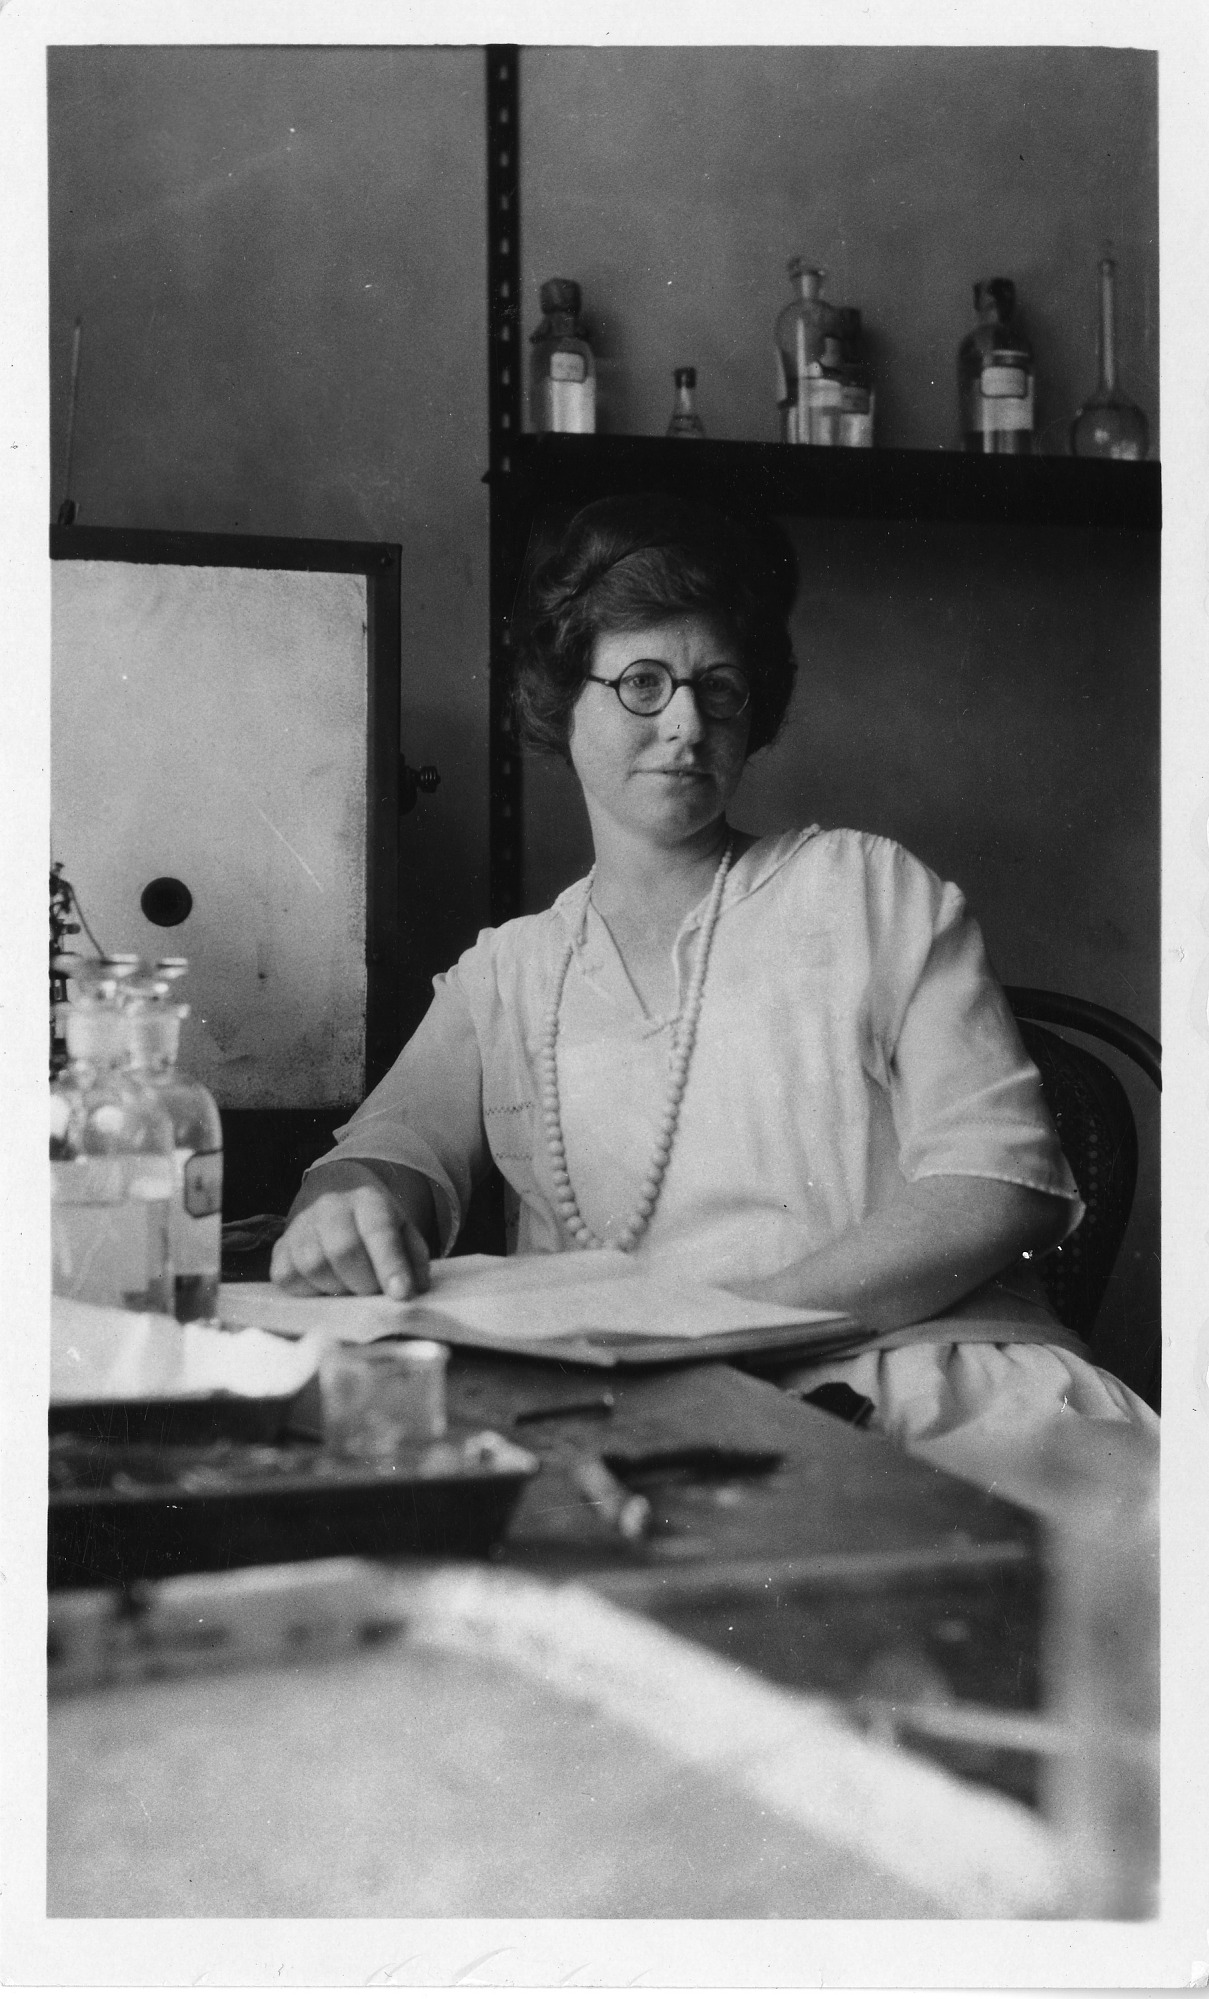 Elizabeth M. Bright, sitting in lab